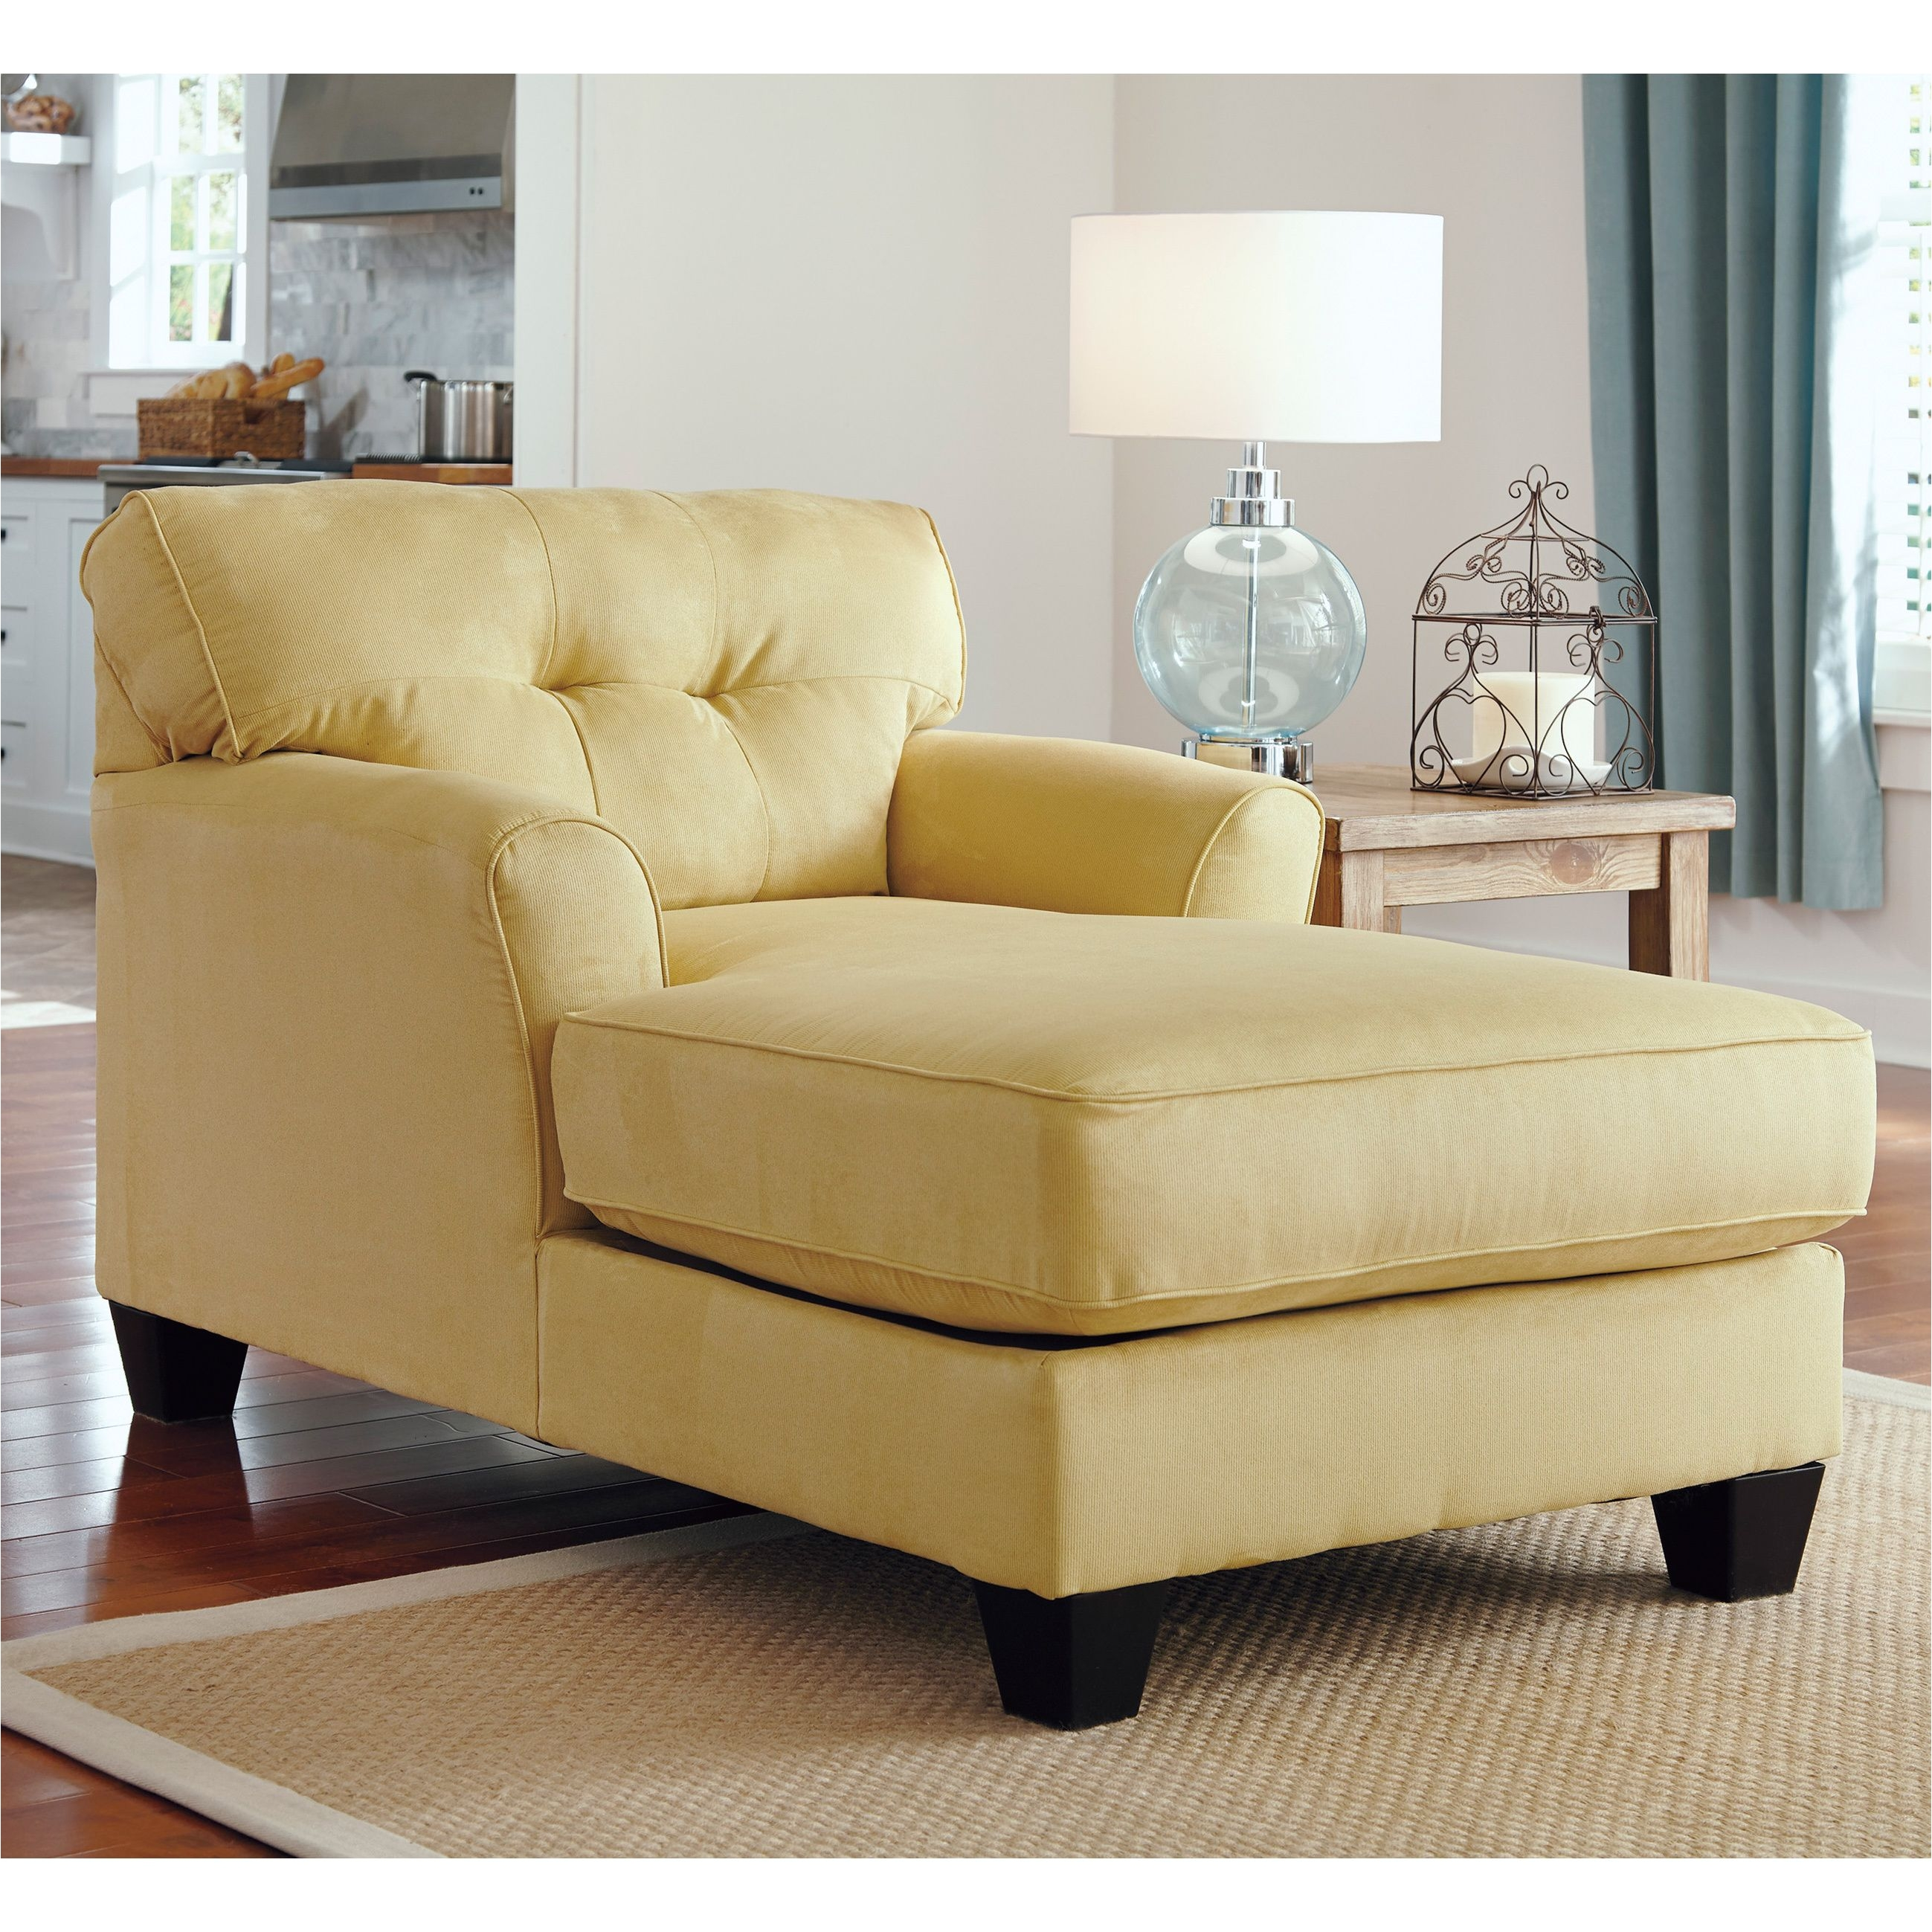 Fainting Chair Slipcover Add Rich Warm Color to Your Living Room with This Stately Goldenrod